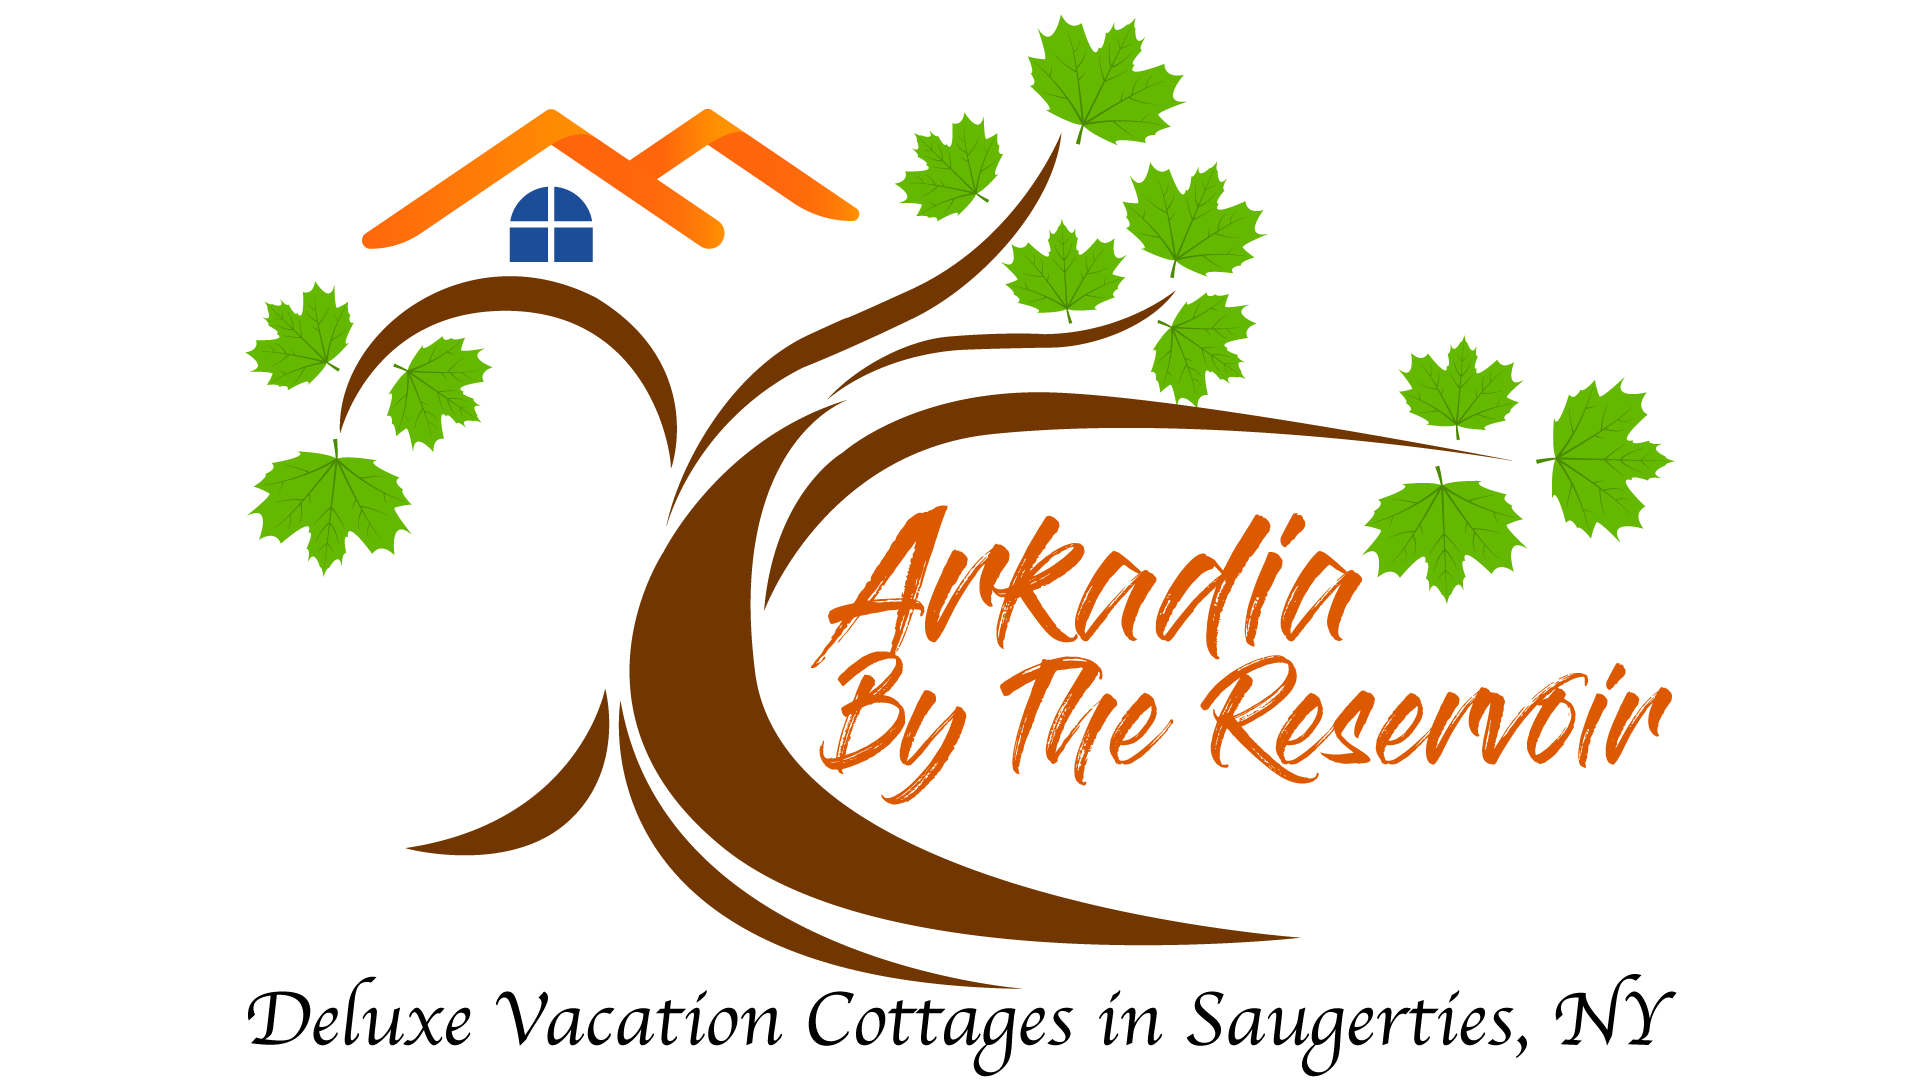 Arkadia Cottages